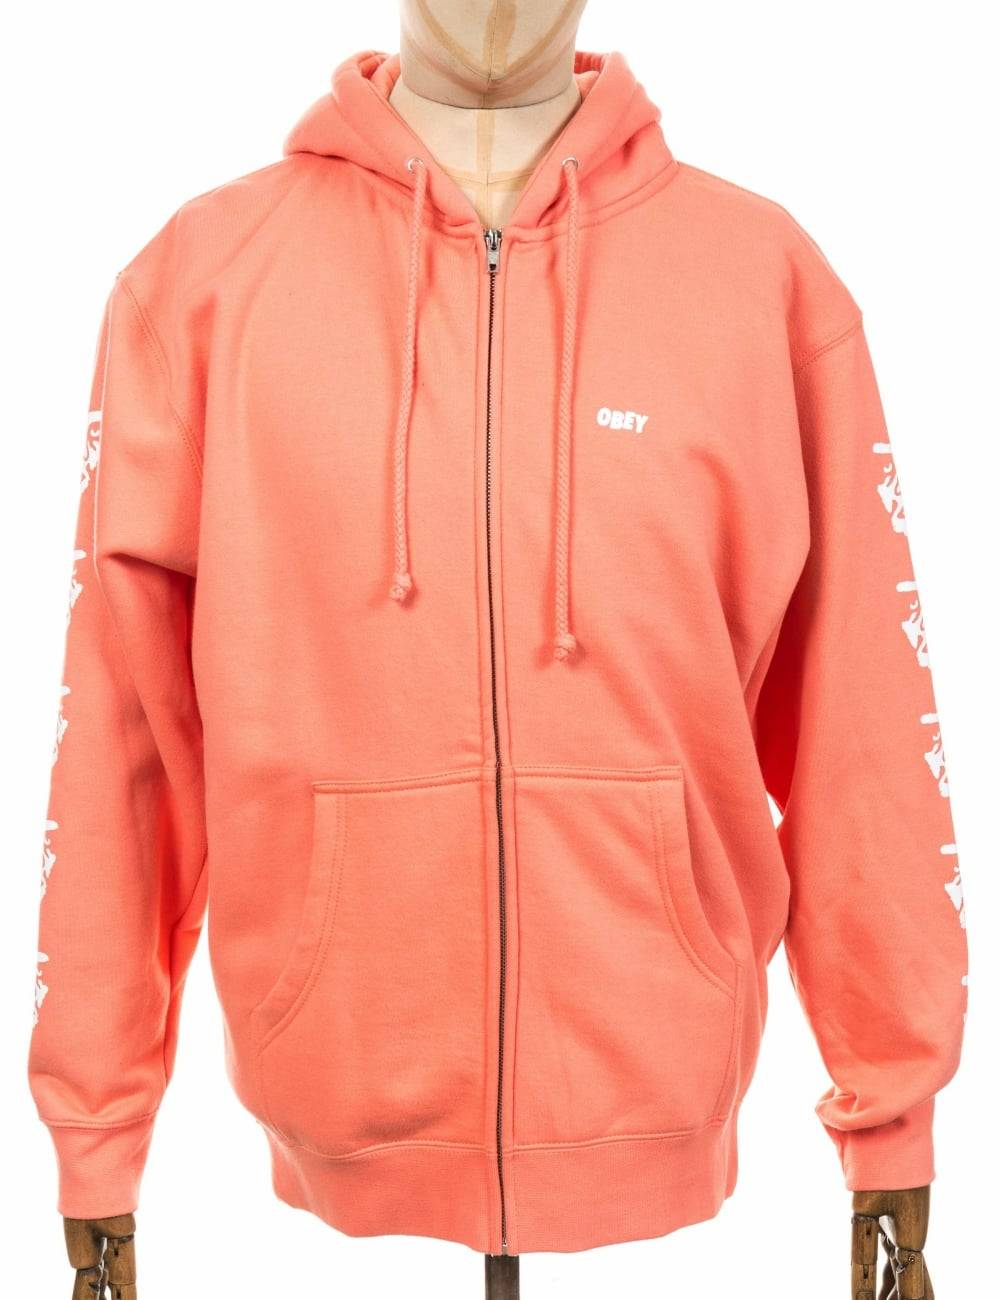 Obey Clothing Creeper 2 Zip Hooded Sweat - Coral Size: Small, Colour: